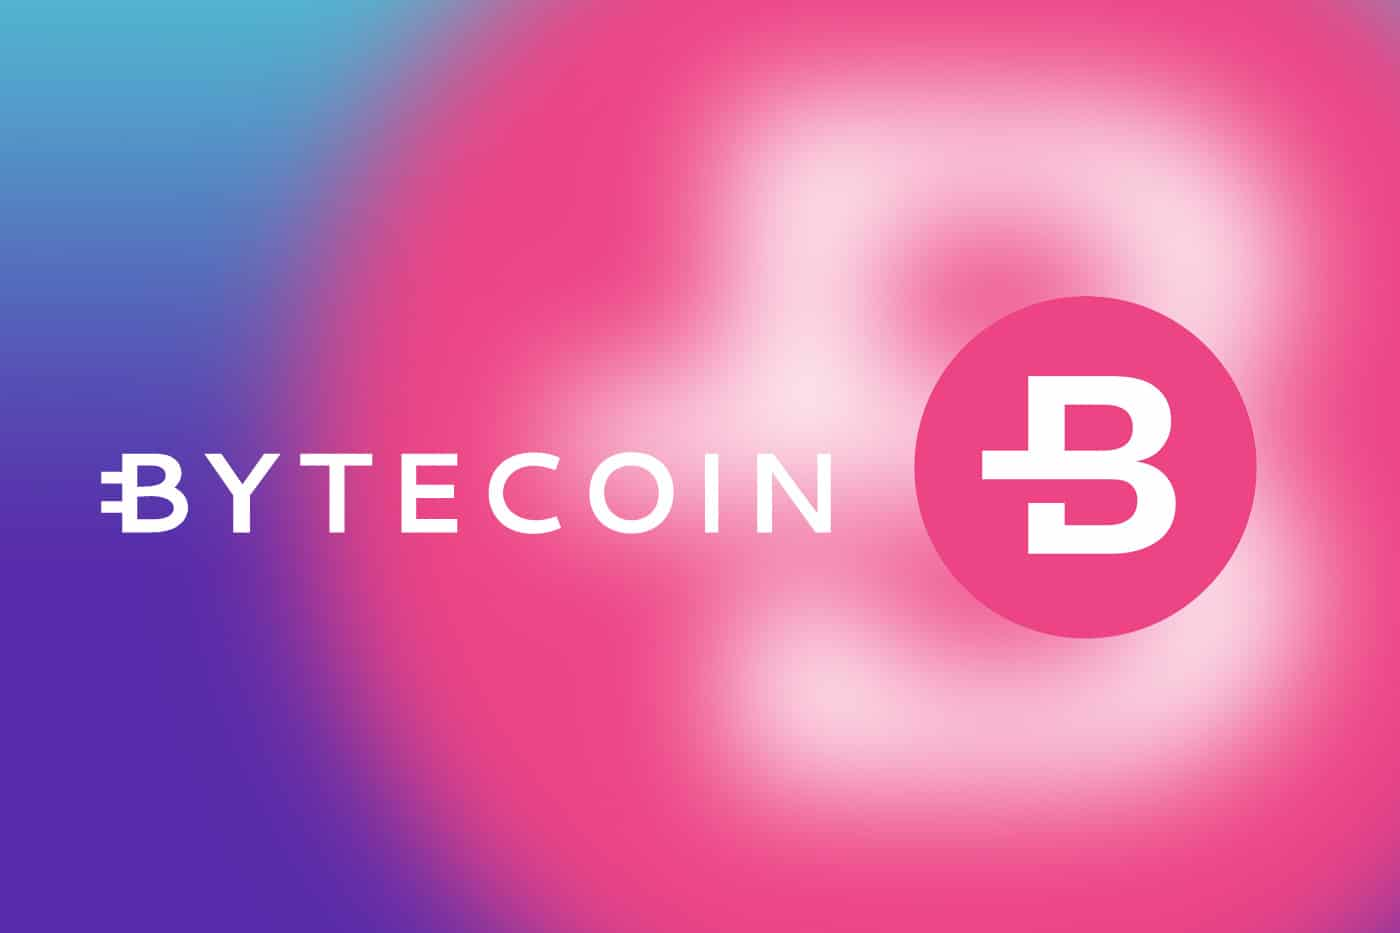 Bytecoin wallets